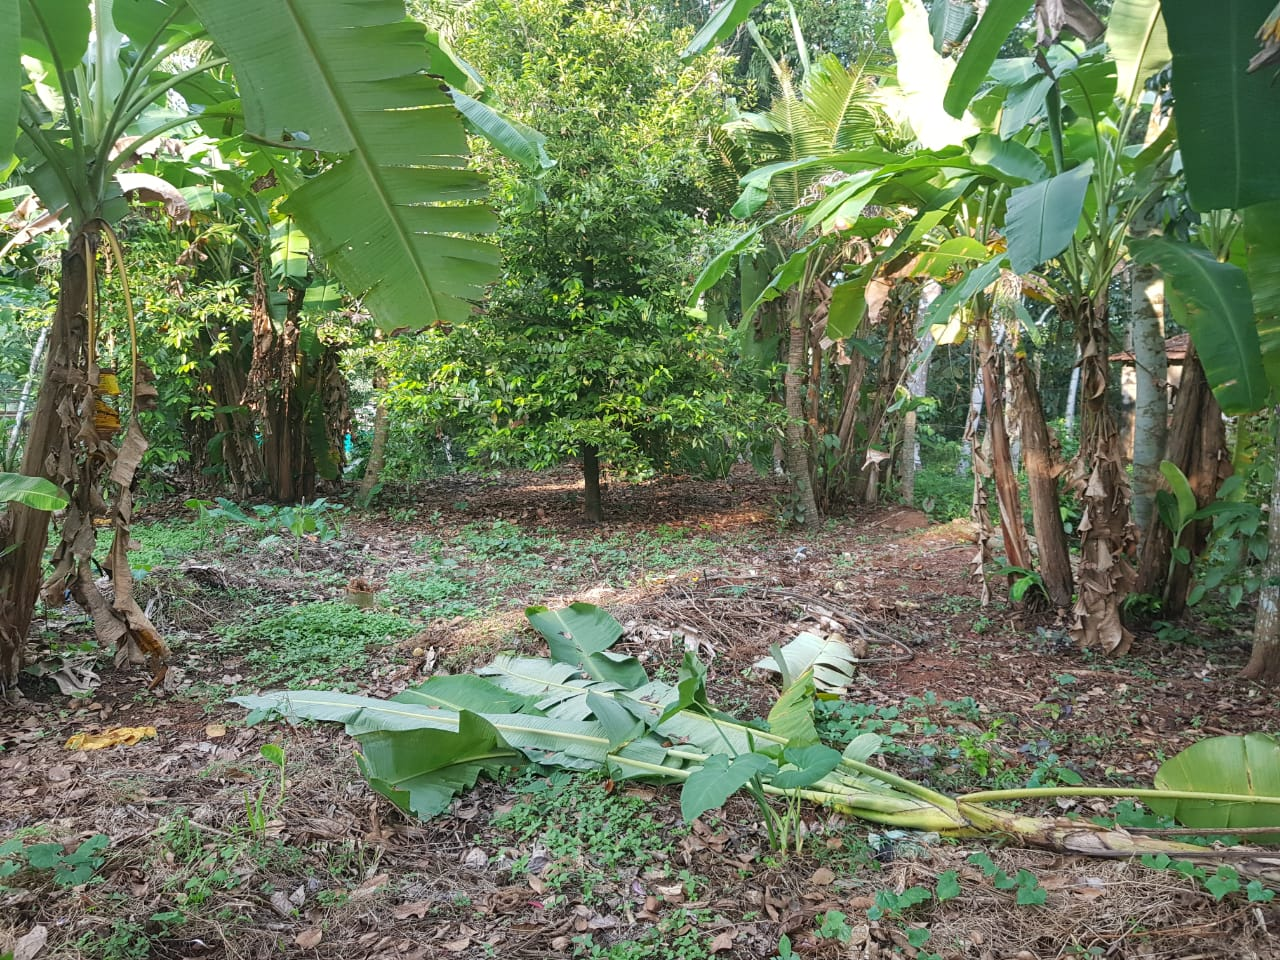 10 Cent Land For Sale In Kollakadavu – Allapuzha District